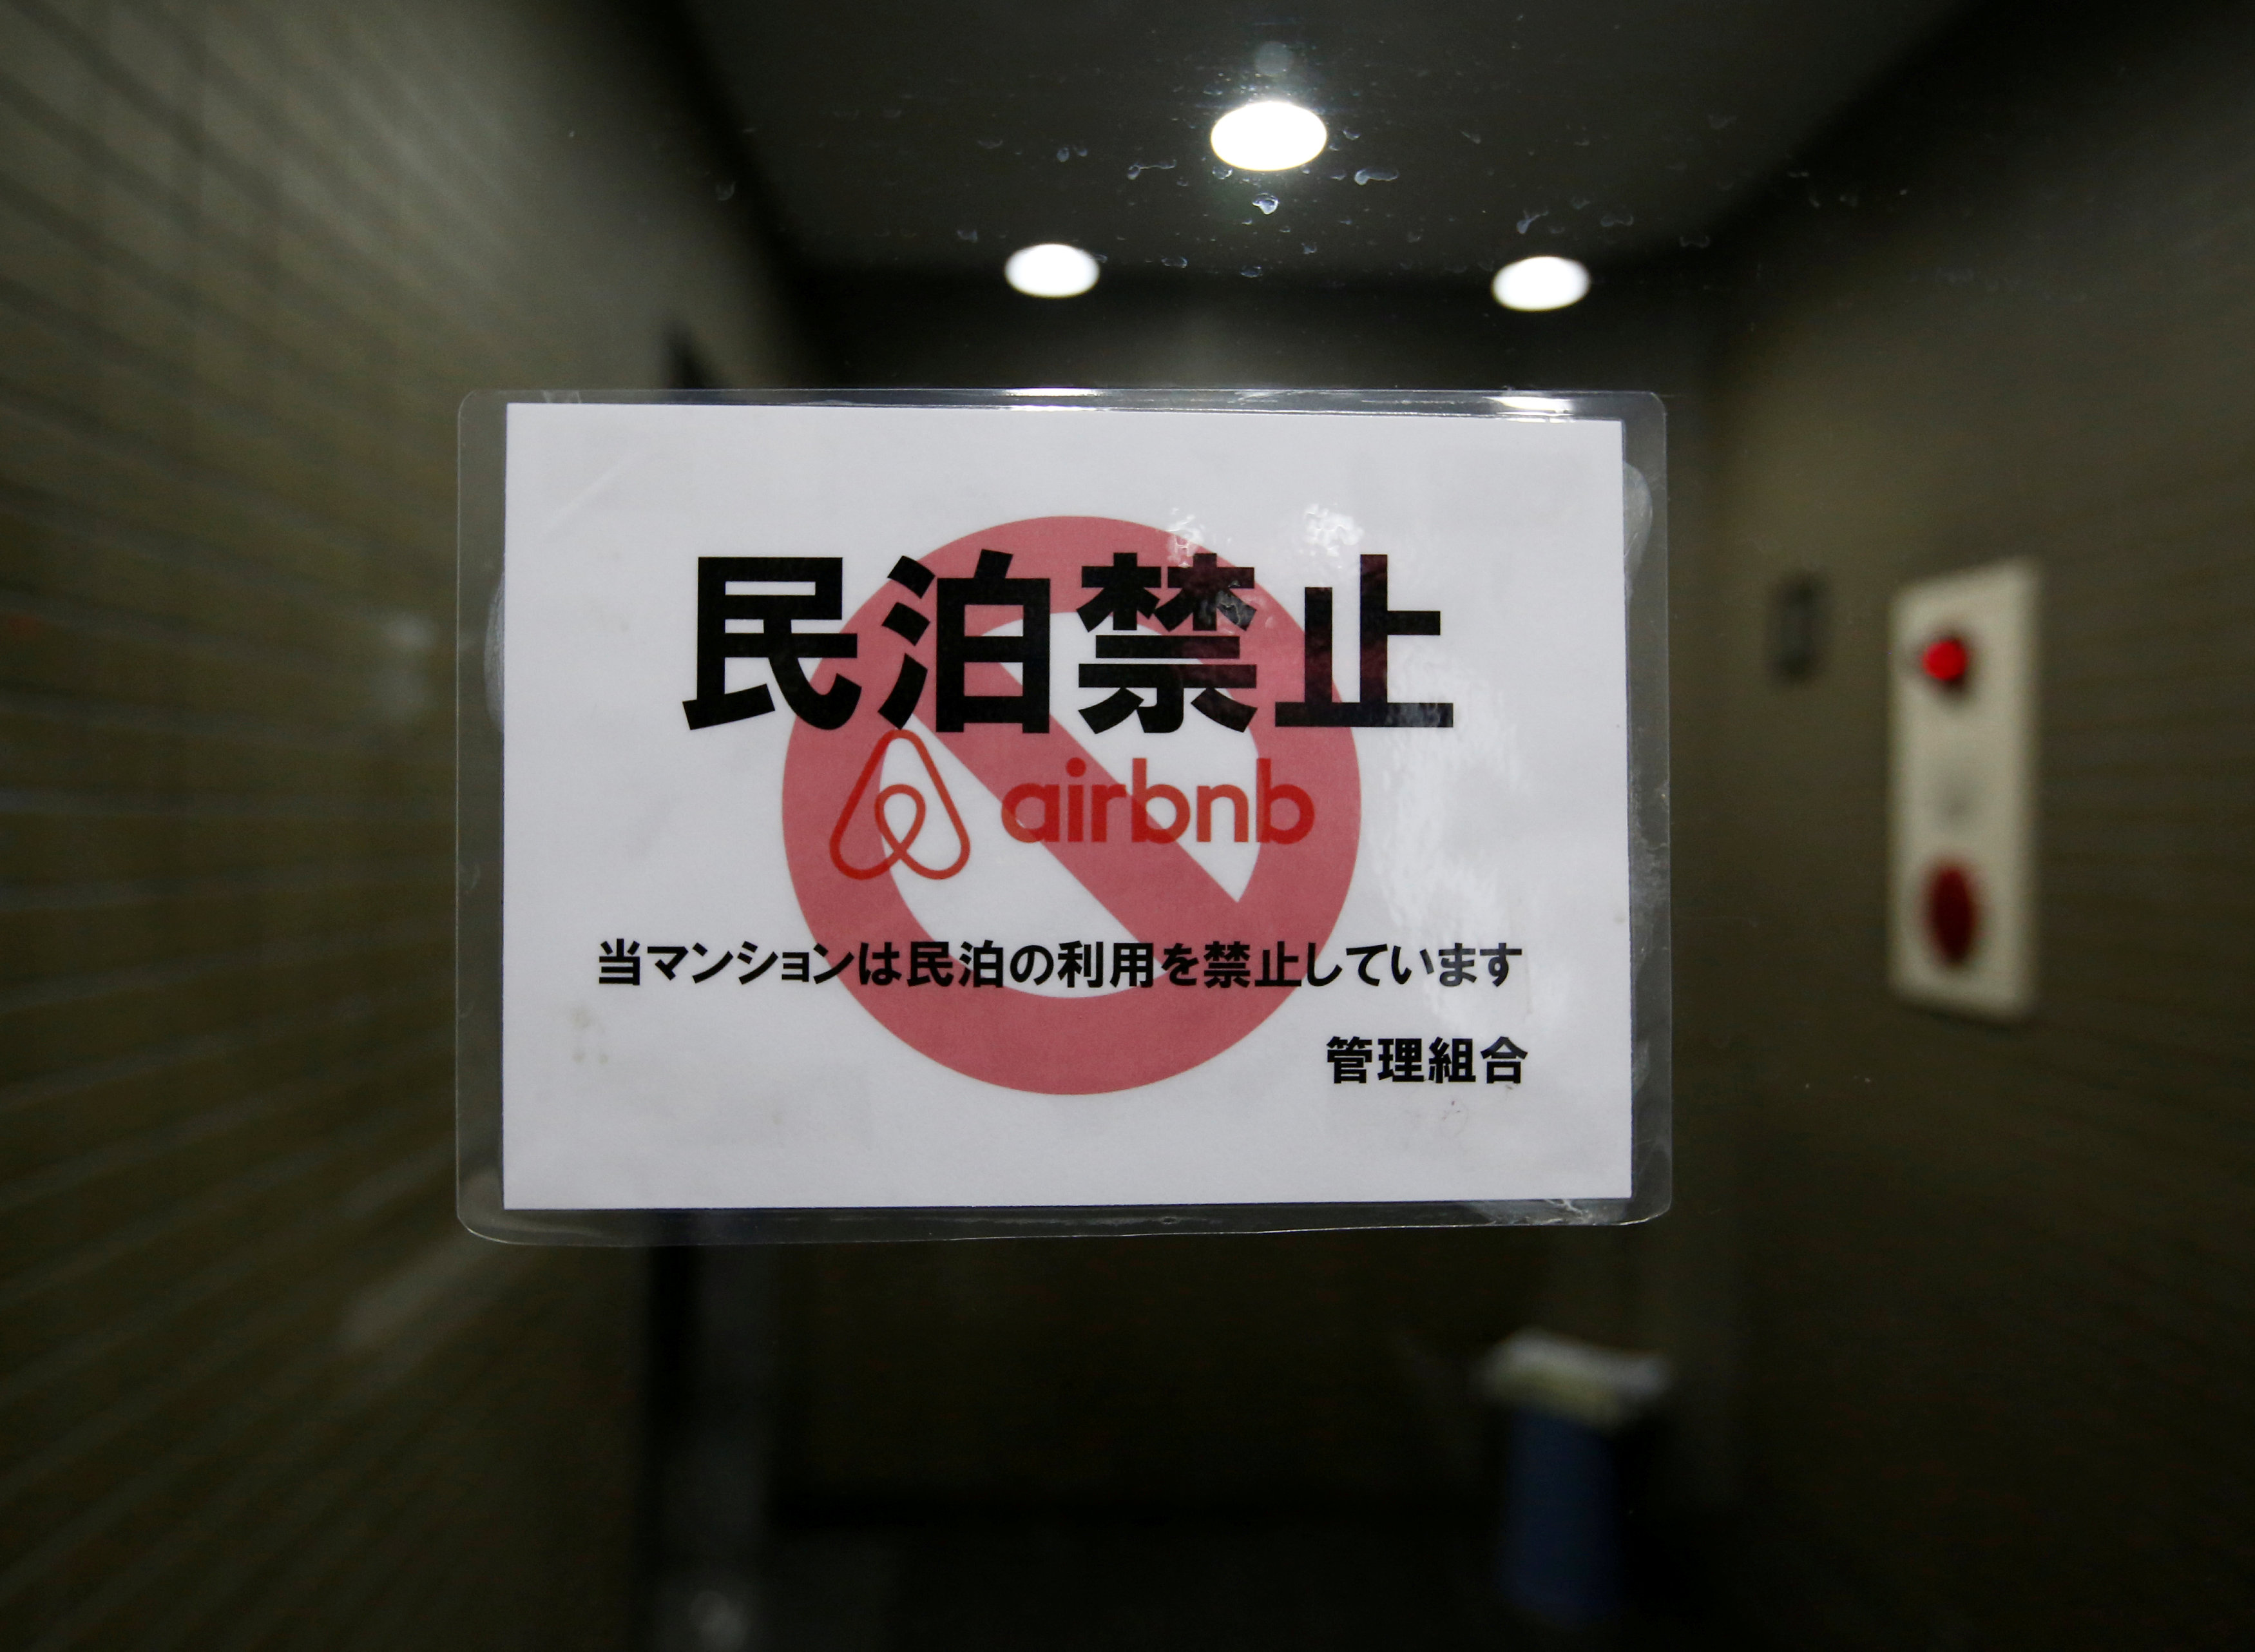 Since last week, many property owners and guests who booked rooms through Airbnb have been surprised to find that thousands of previously listed lodgings, which had not obtained licenses to operate, have been delisted from Airbnb's website. | REUTERS